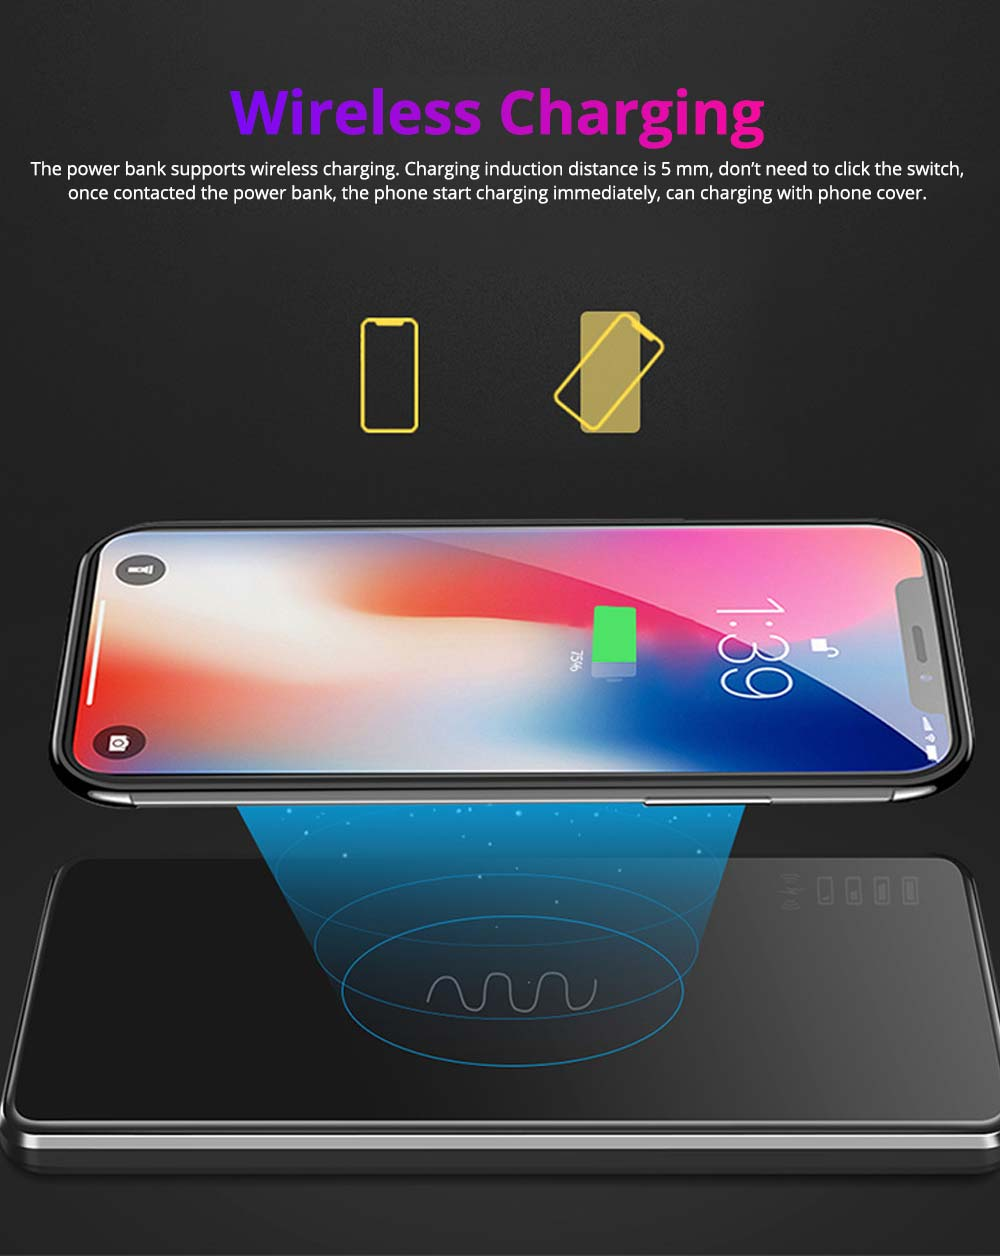 Aluminum Alloy 10,000mAh Wireless Charging Power Bank, Portable External Battery Acrylic Charger for Cell Phone 6